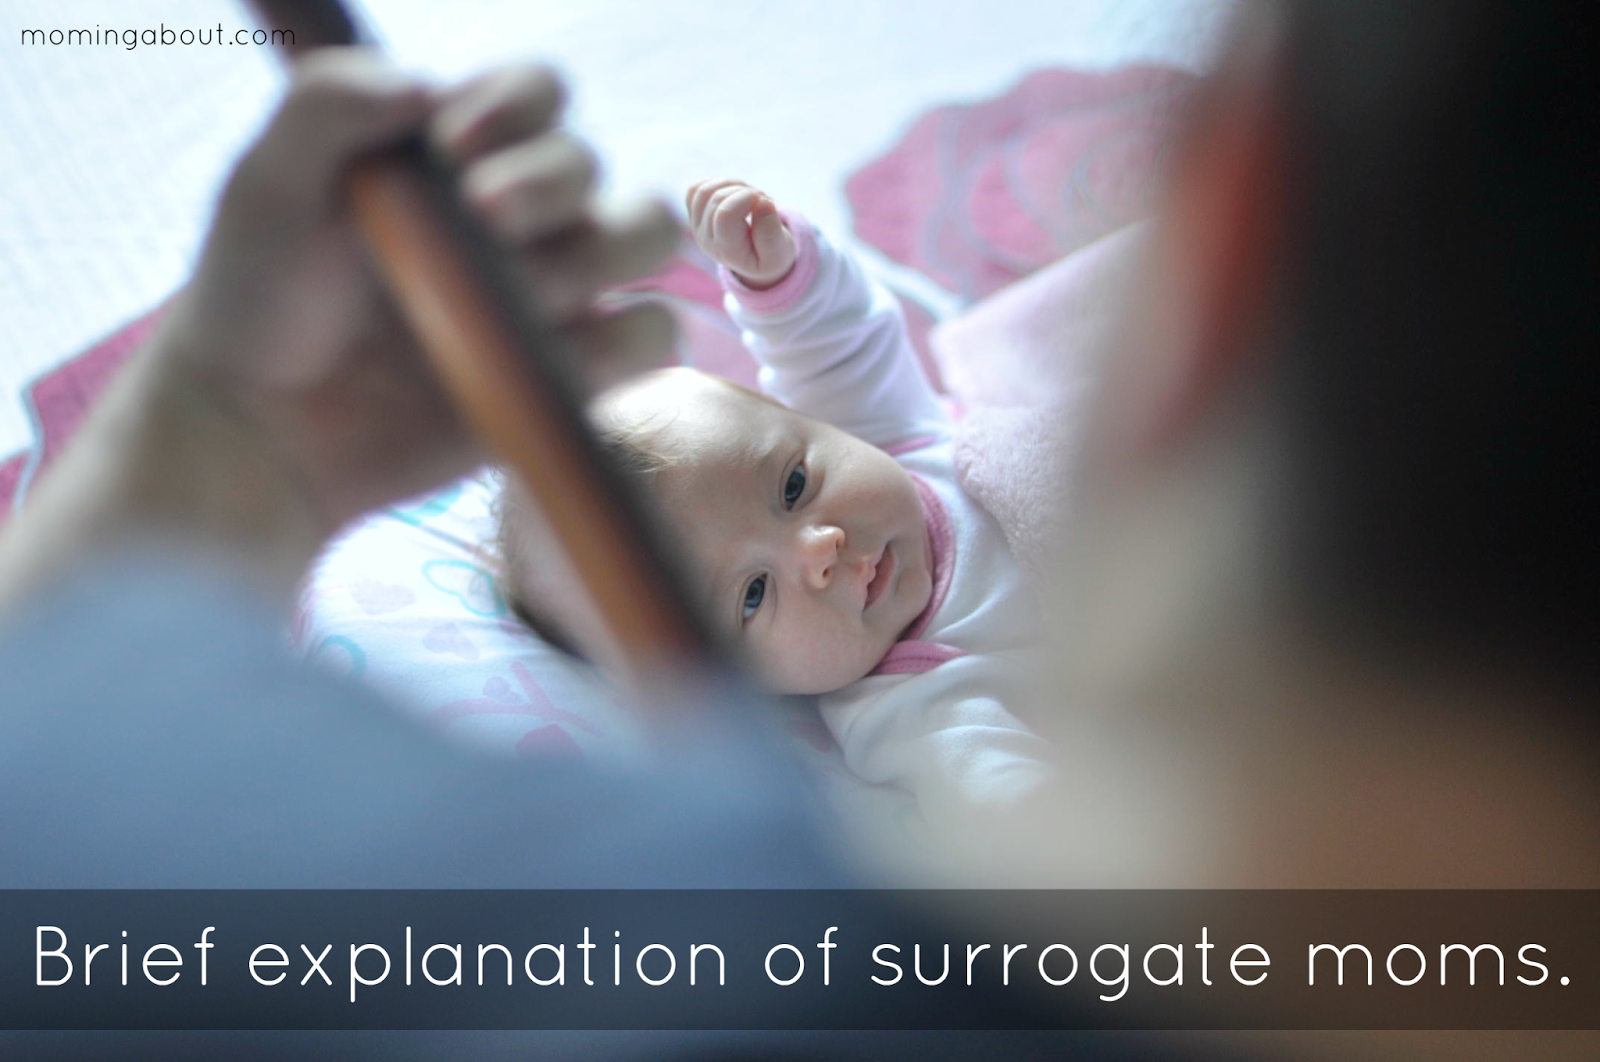 Brief explanation of surrogate moms